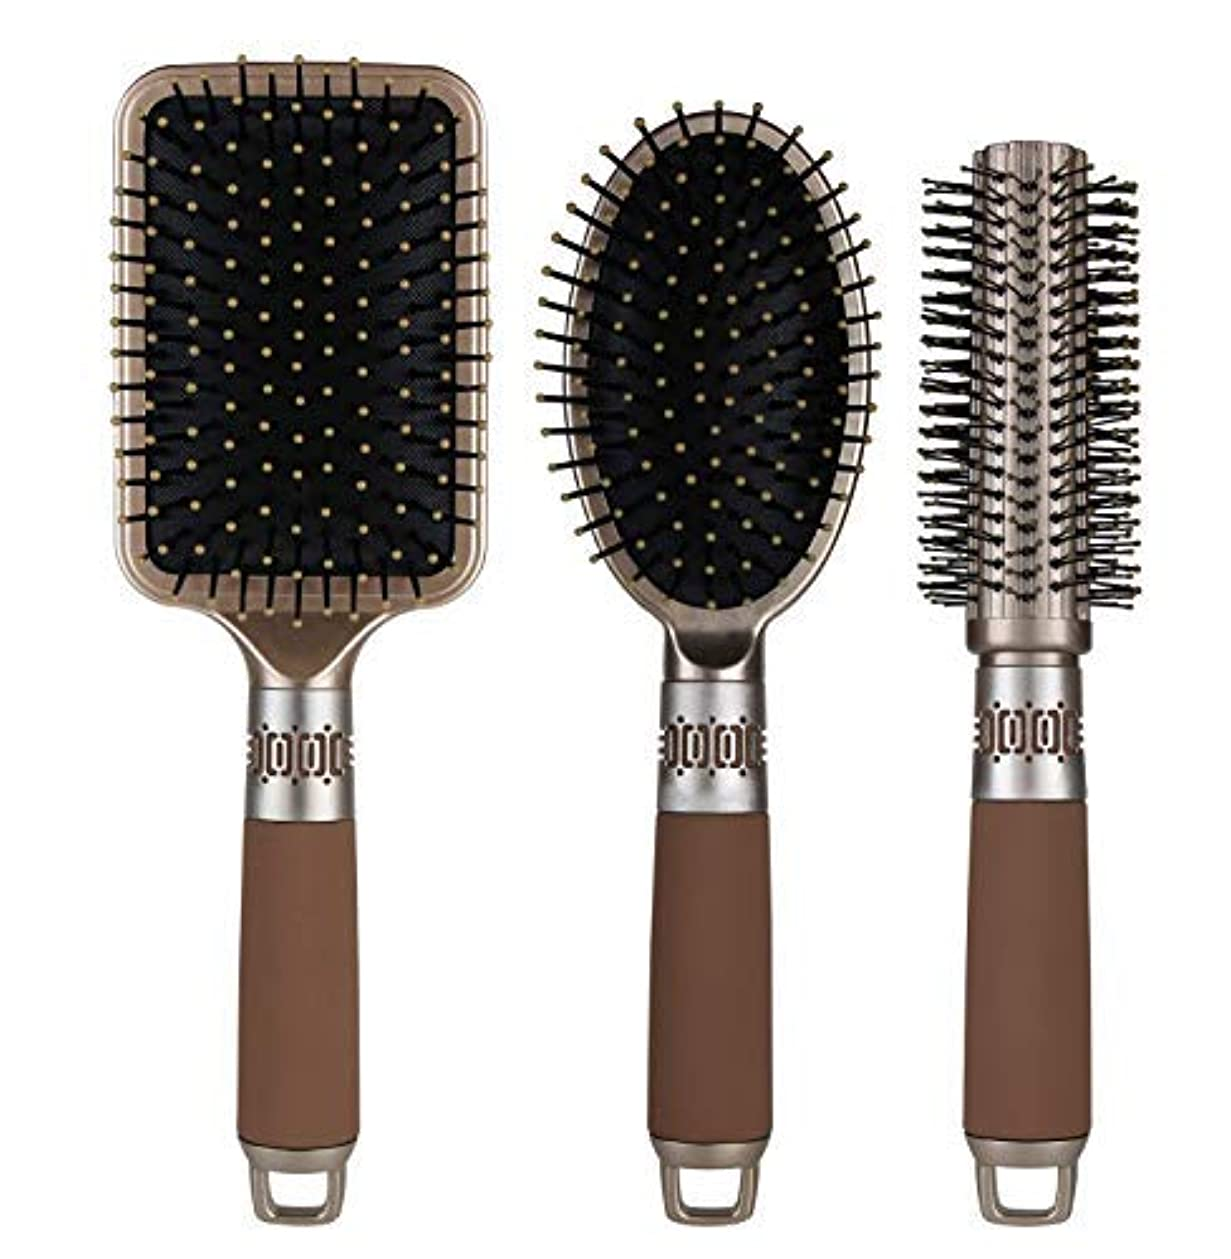 NVTED 3PCS Hair Combs, Massage Paddle Round Brush Hair Brushes Set Anti Static Detangling Air Cushion Bristle...